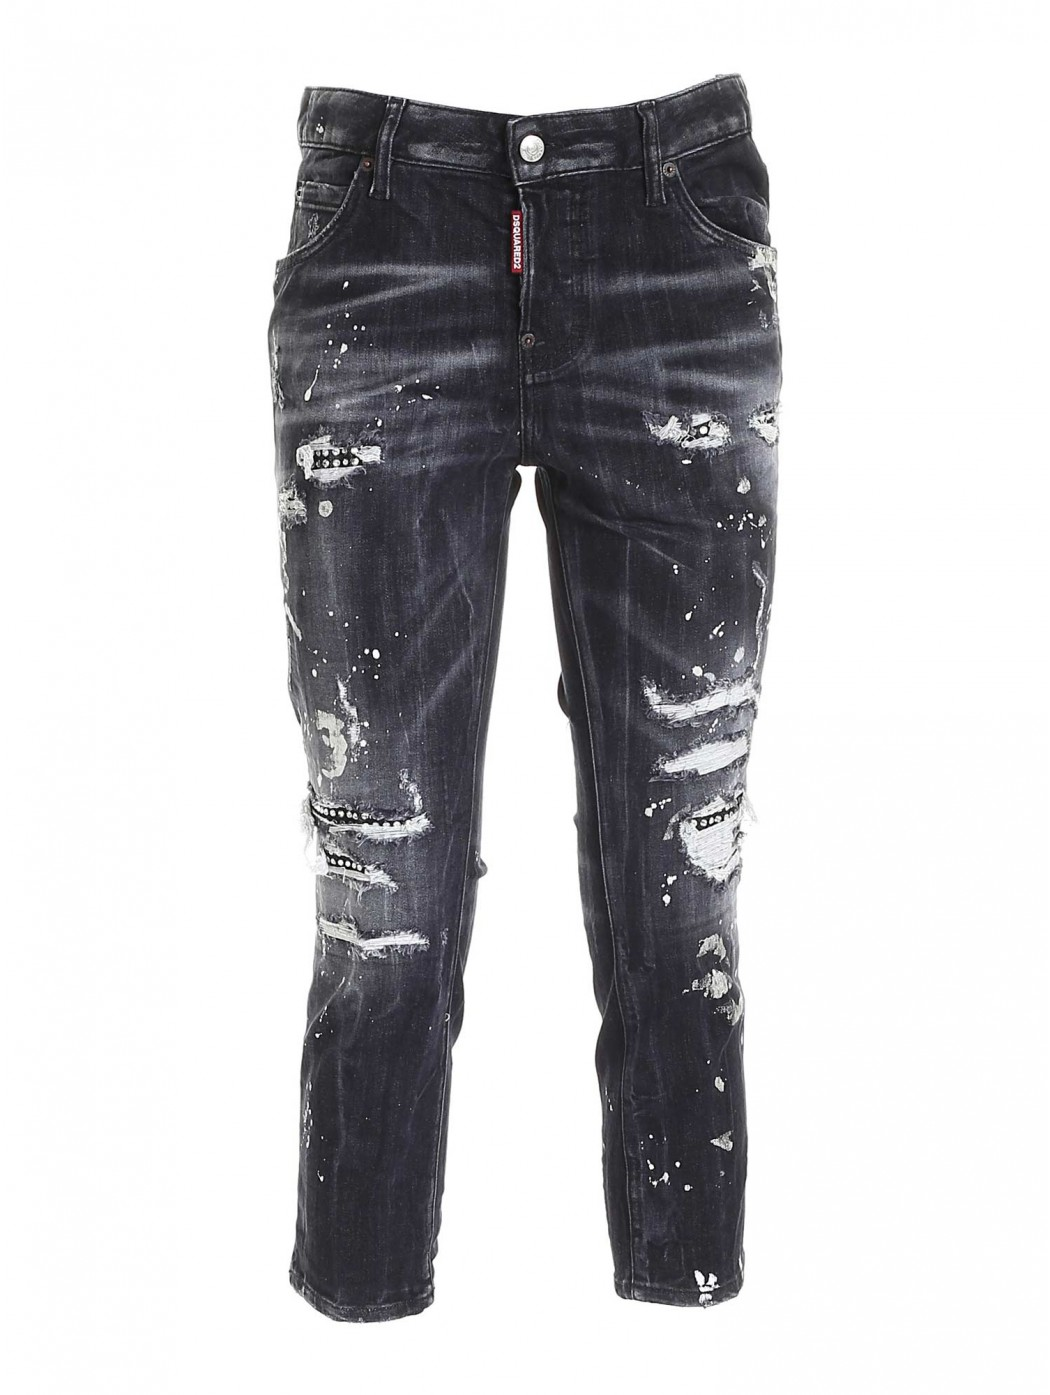 JEANS DESTROYED COLL CROPPED NERO DSQUARED2 S75LB0488S30503 900